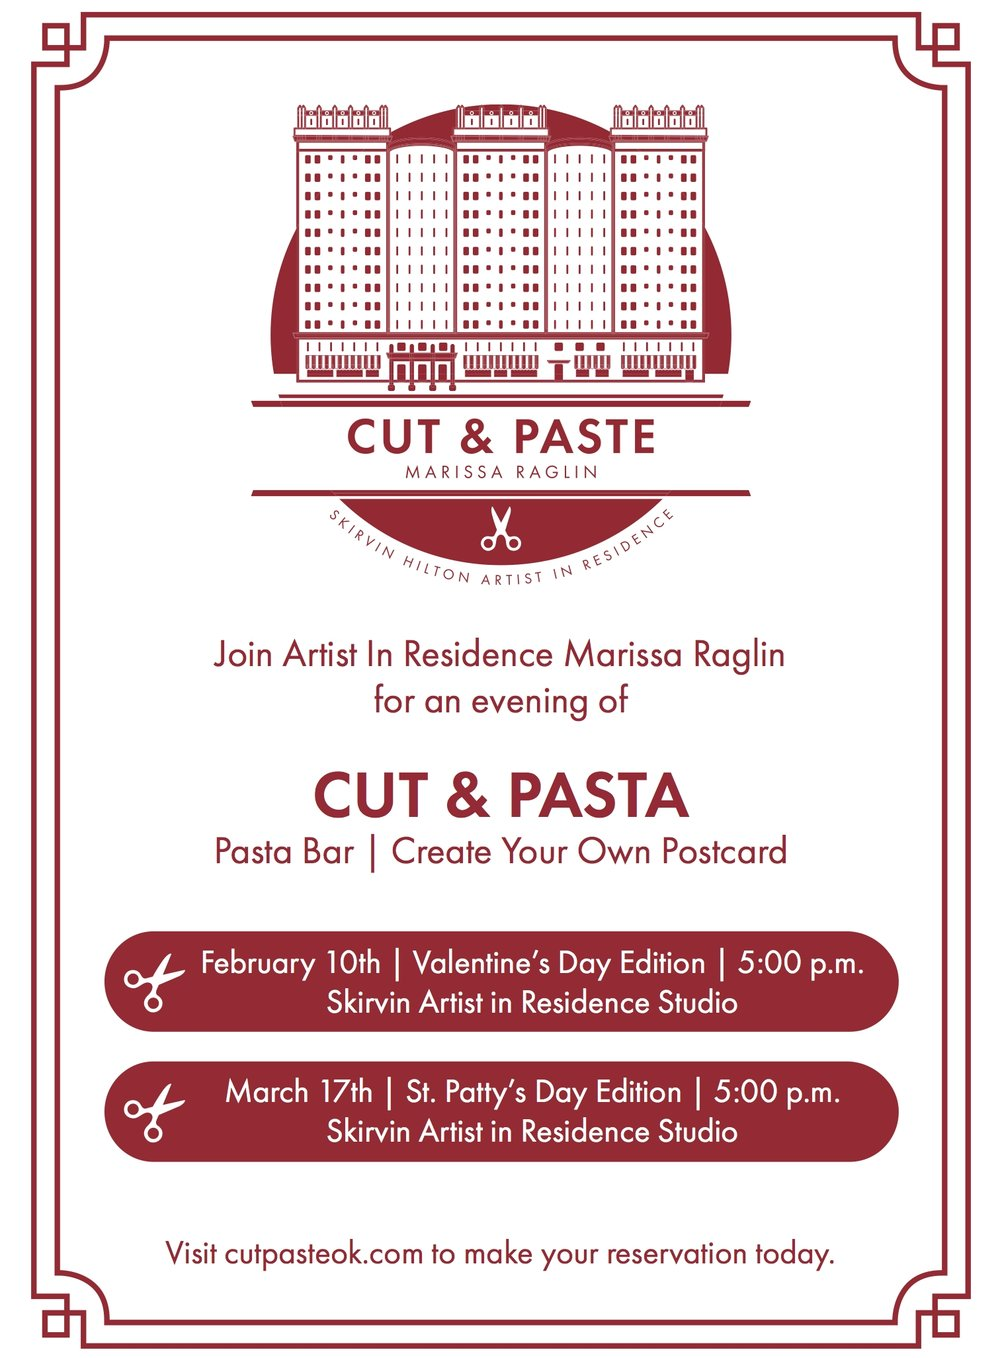 cut_and_paste__cut_and_pasta_1.jpg